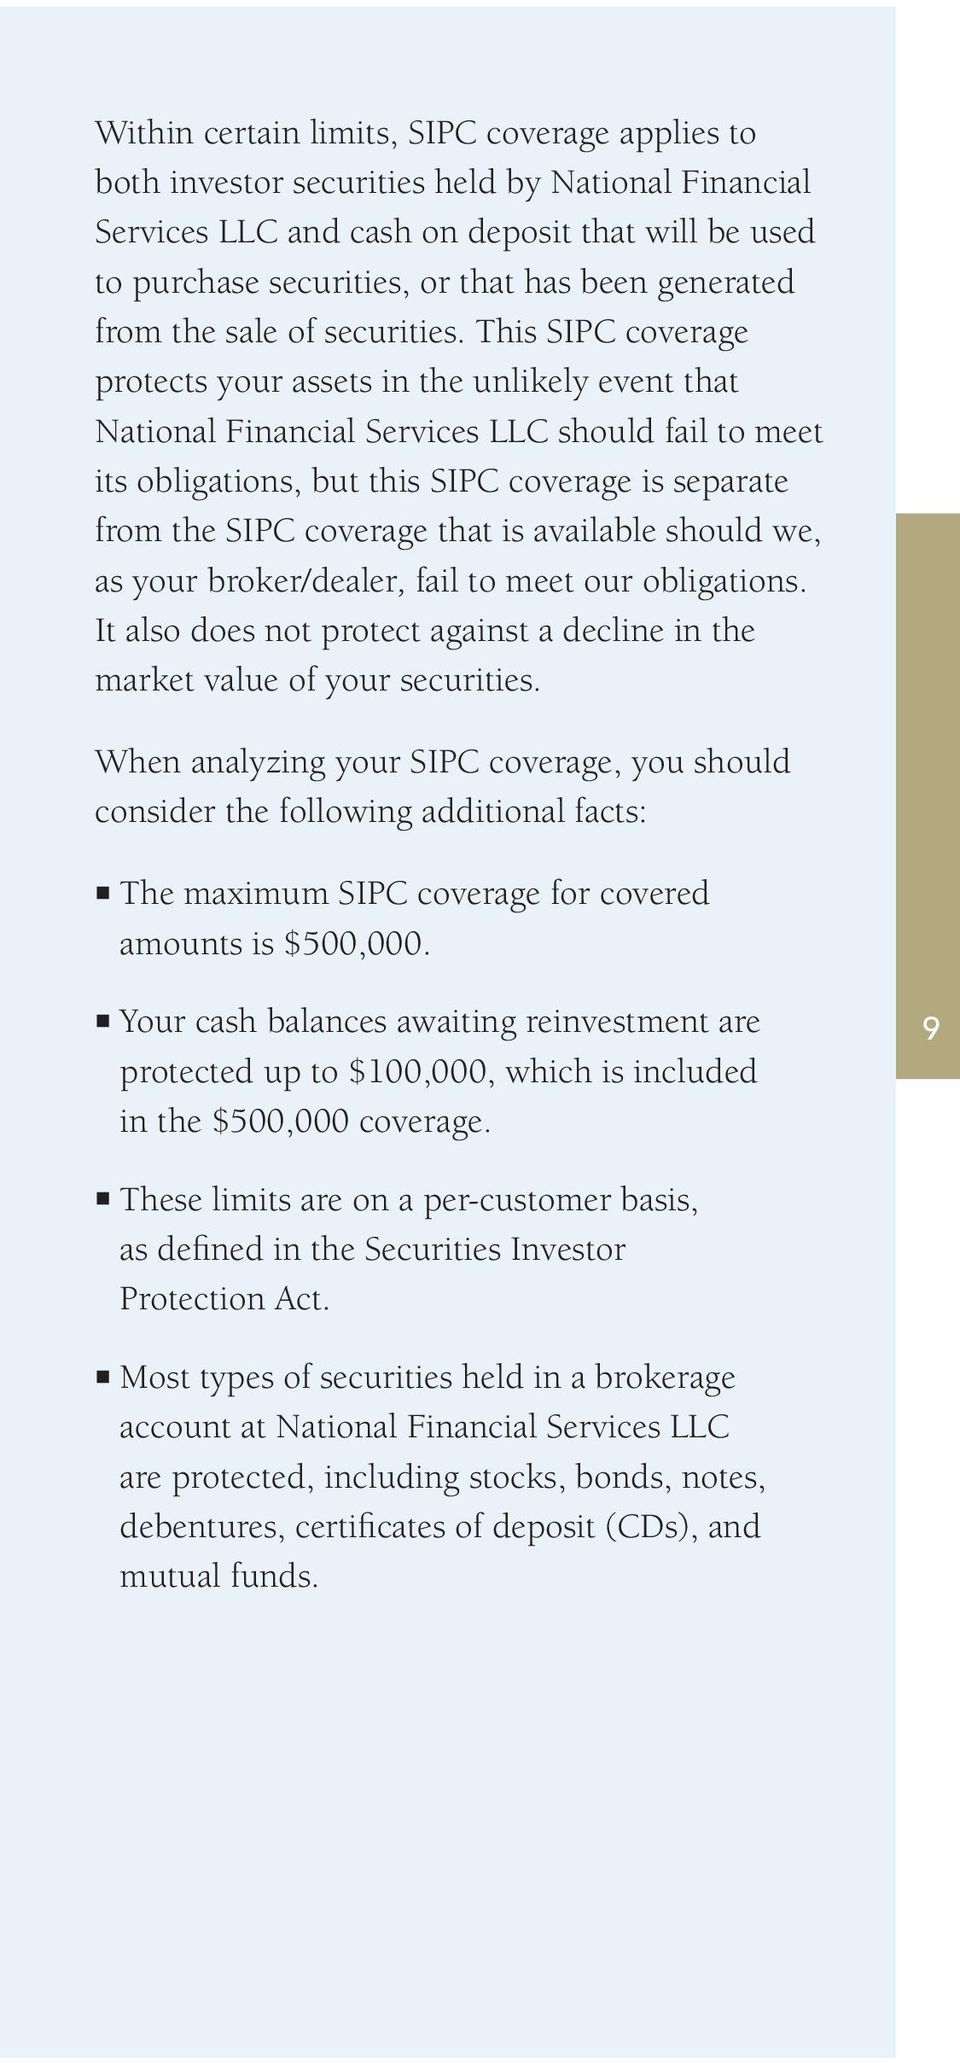 This SIPC coverage protects your assets in the unlikely event that National Financial Services LLC should fail to meet its obligations, but this SIPC coverage is separate from the SIPC coverage that